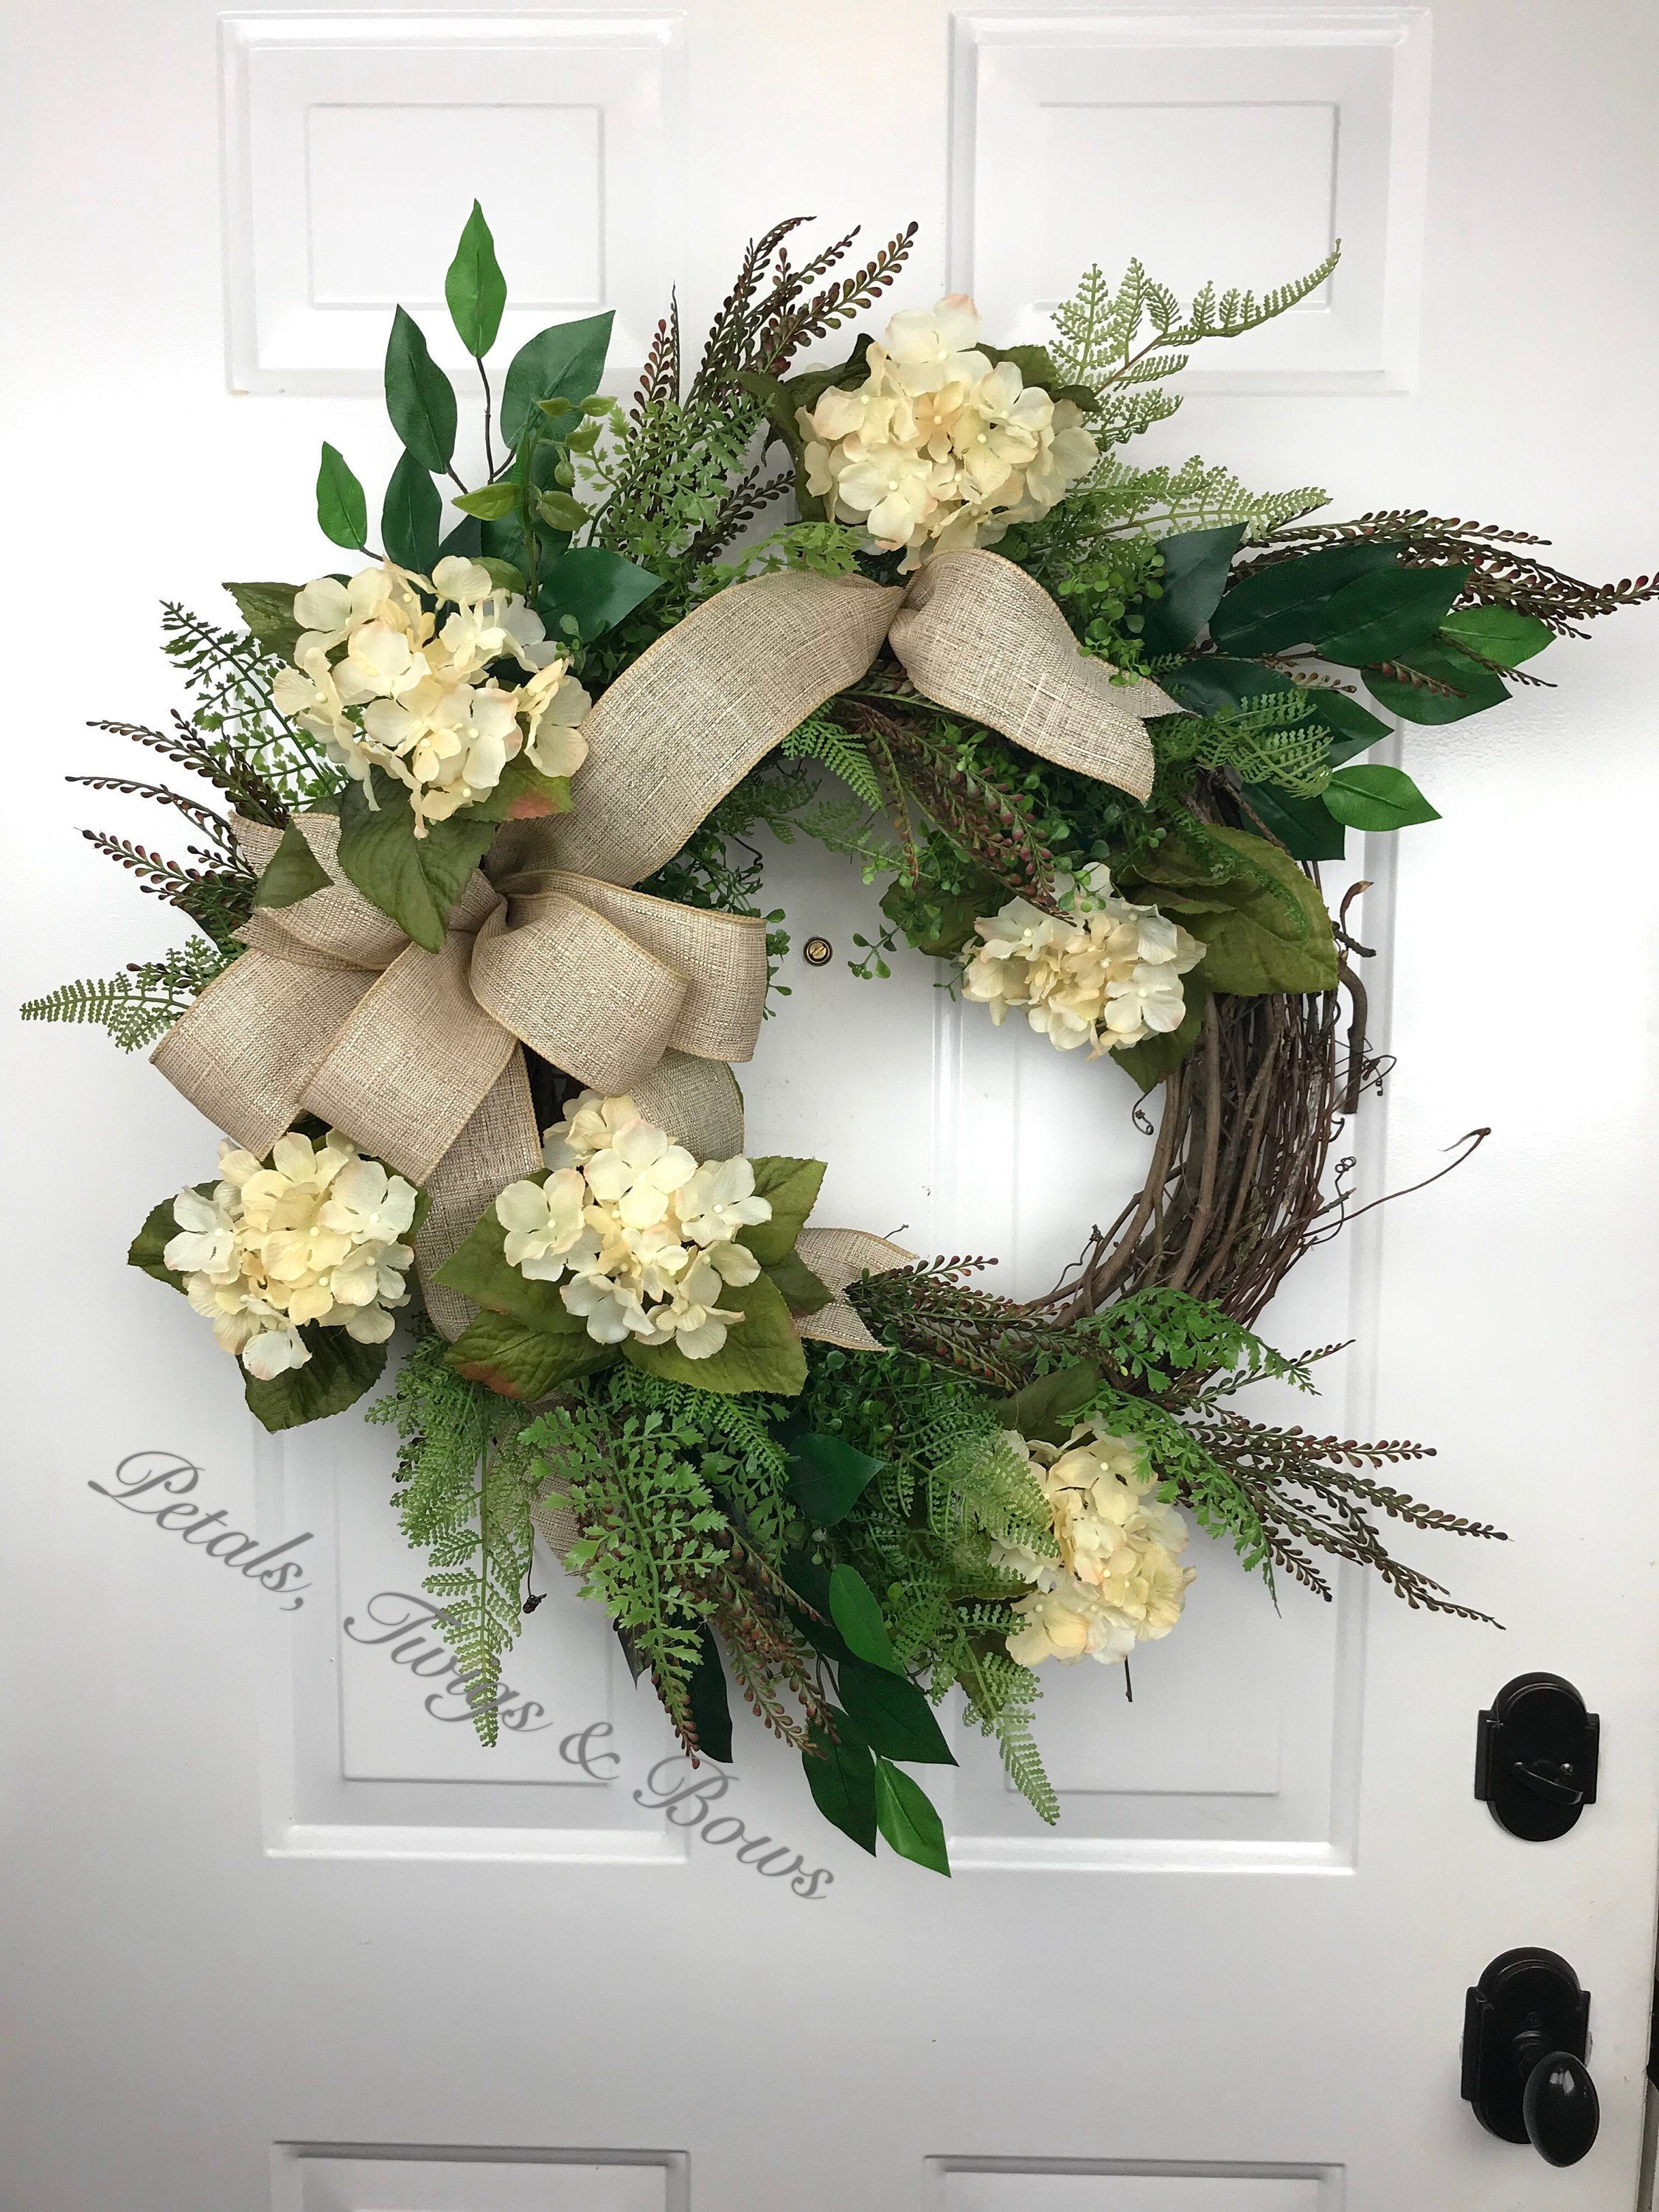 Everyday Wreath Neutral Hydrangea Greenery Outdoor Front Door Wall Decor Mantel By